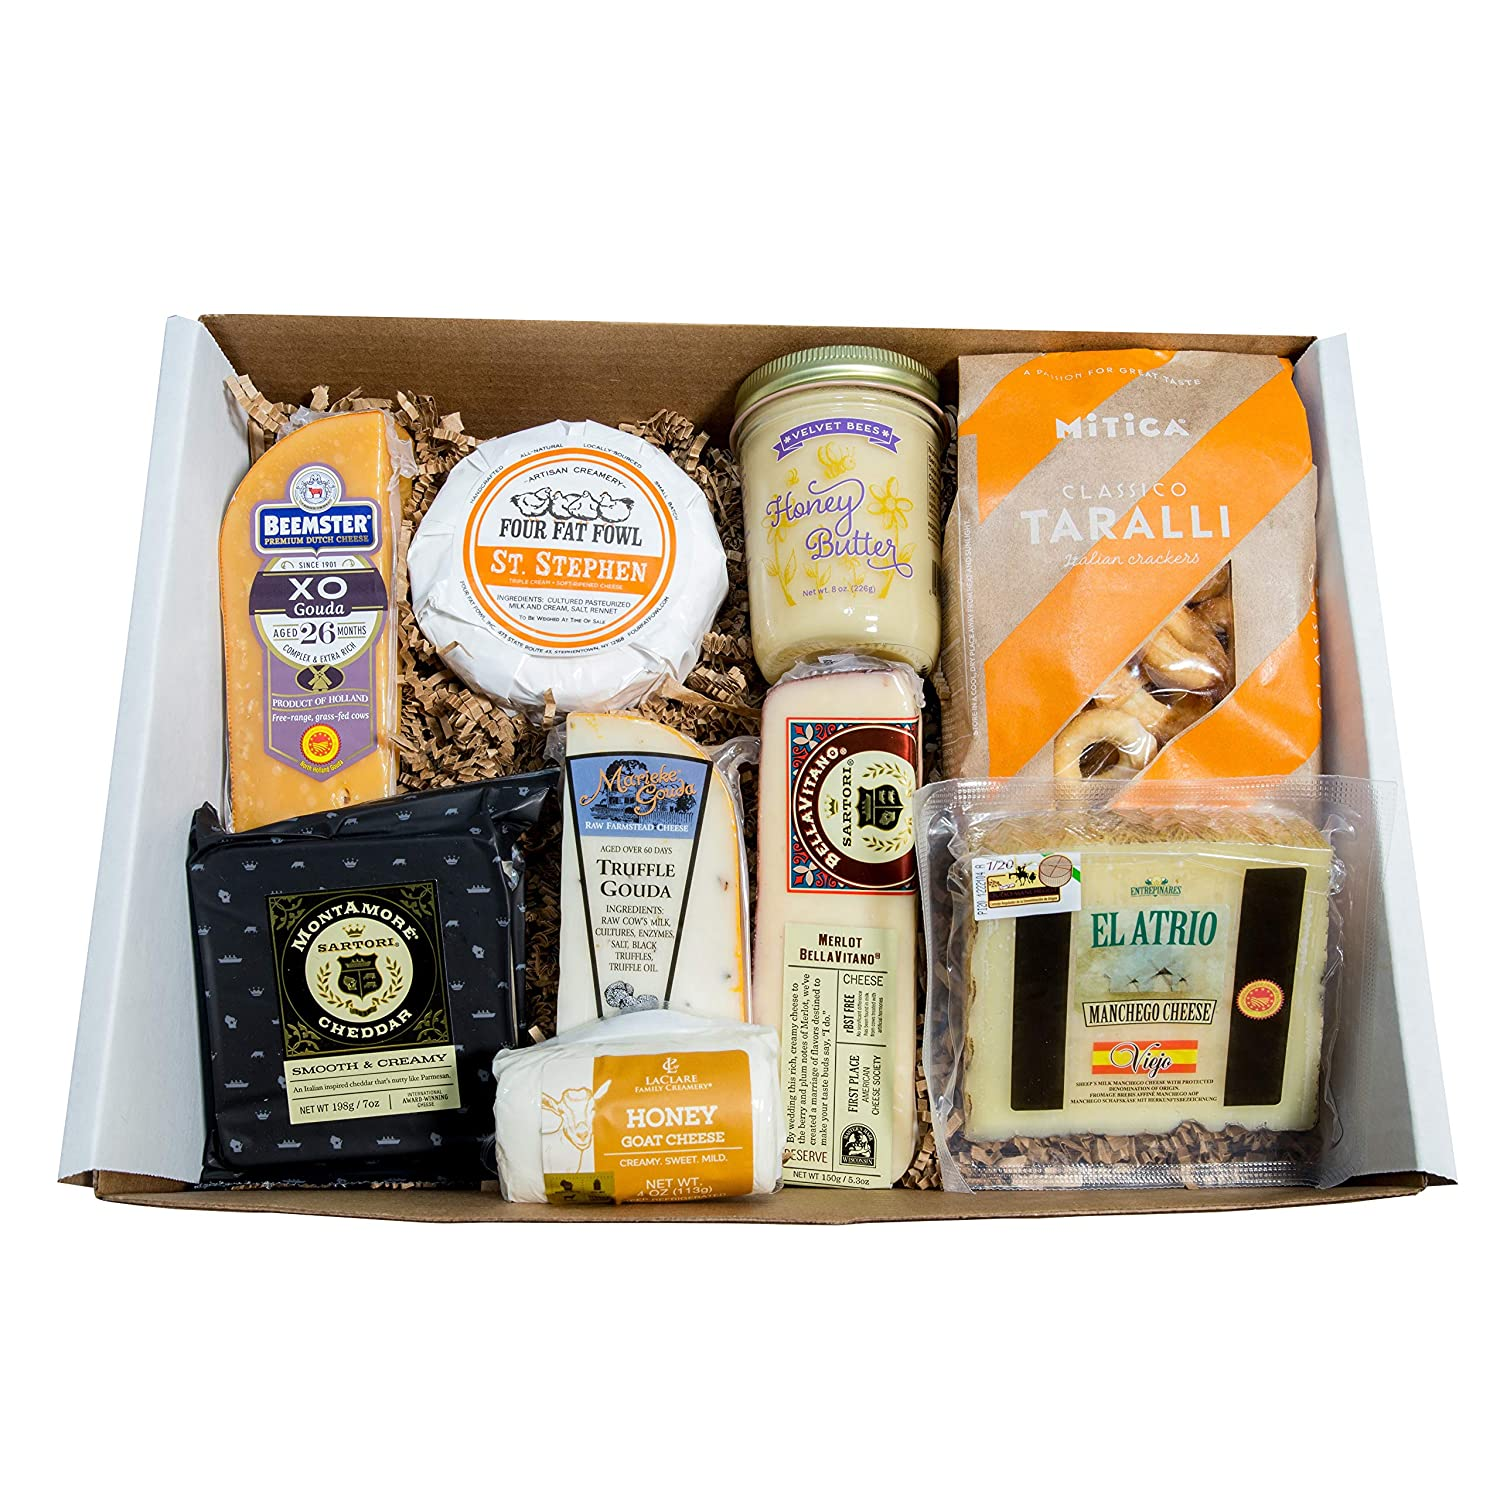 Classic Provisions Artisan Cheese Box – Wine Lovers   Cheese   Cheese Board   Cheese Gift Baskets   Holiday Gift   Appetizers   Cheese Platter   Gourmet Cheeses   Montamore   Gouda   Brie   Manchego